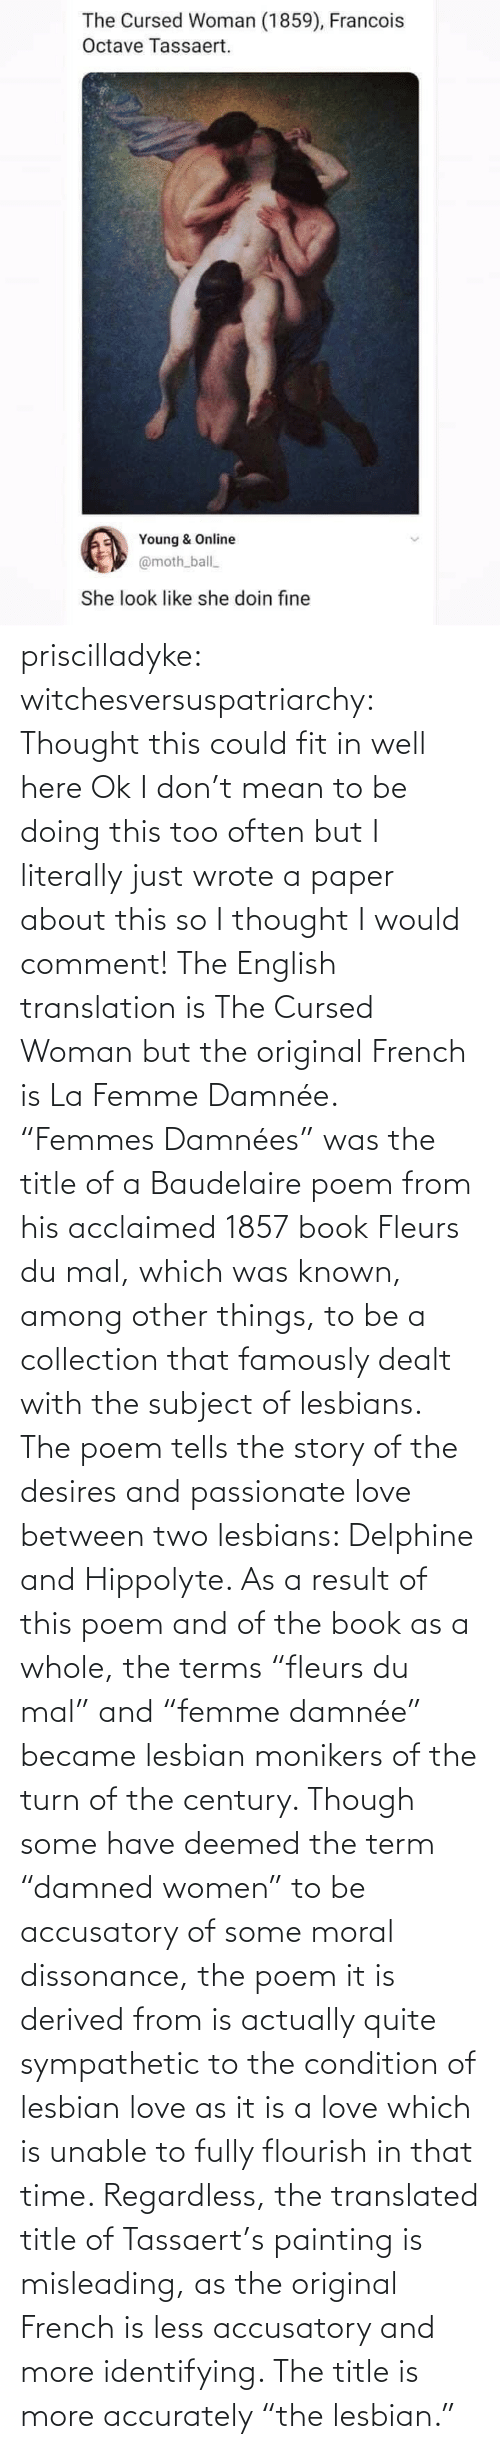 "OK: priscilladyke:  witchesversuspatriarchy: Thought this could fit in well here   Ok I don't mean to be doing this too often but I literally just wrote a paper about this so I thought I would comment! The English translation is The Cursed Woman but the original French is La Femme Damnée. ""Femmes Damnées"" was the title of a Baudelaire poem from his acclaimed 1857 book Fleurs du mal, which was known, among other things, to be a collection that famously dealt with the subject of lesbians. The poem tells the story of the desires and passionate love between two lesbians:  Delphine and Hippolyte. As a result of this poem and of the book as a whole, the terms ""fleurs du mal"" and ""femme damnée"" became lesbian monikers of the turn of the century. Though some have deemed the term ""damned women"" to be accusatory of some moral dissonance, the poem it is derived from is actually quite sympathetic to the condition of lesbian love as it is a love which is unable to fully flourish in that time. Regardless, the translated title of Tassaert's painting is misleading, as the original French is less accusatory and more identifying. The title is more accurately ""the lesbian."""